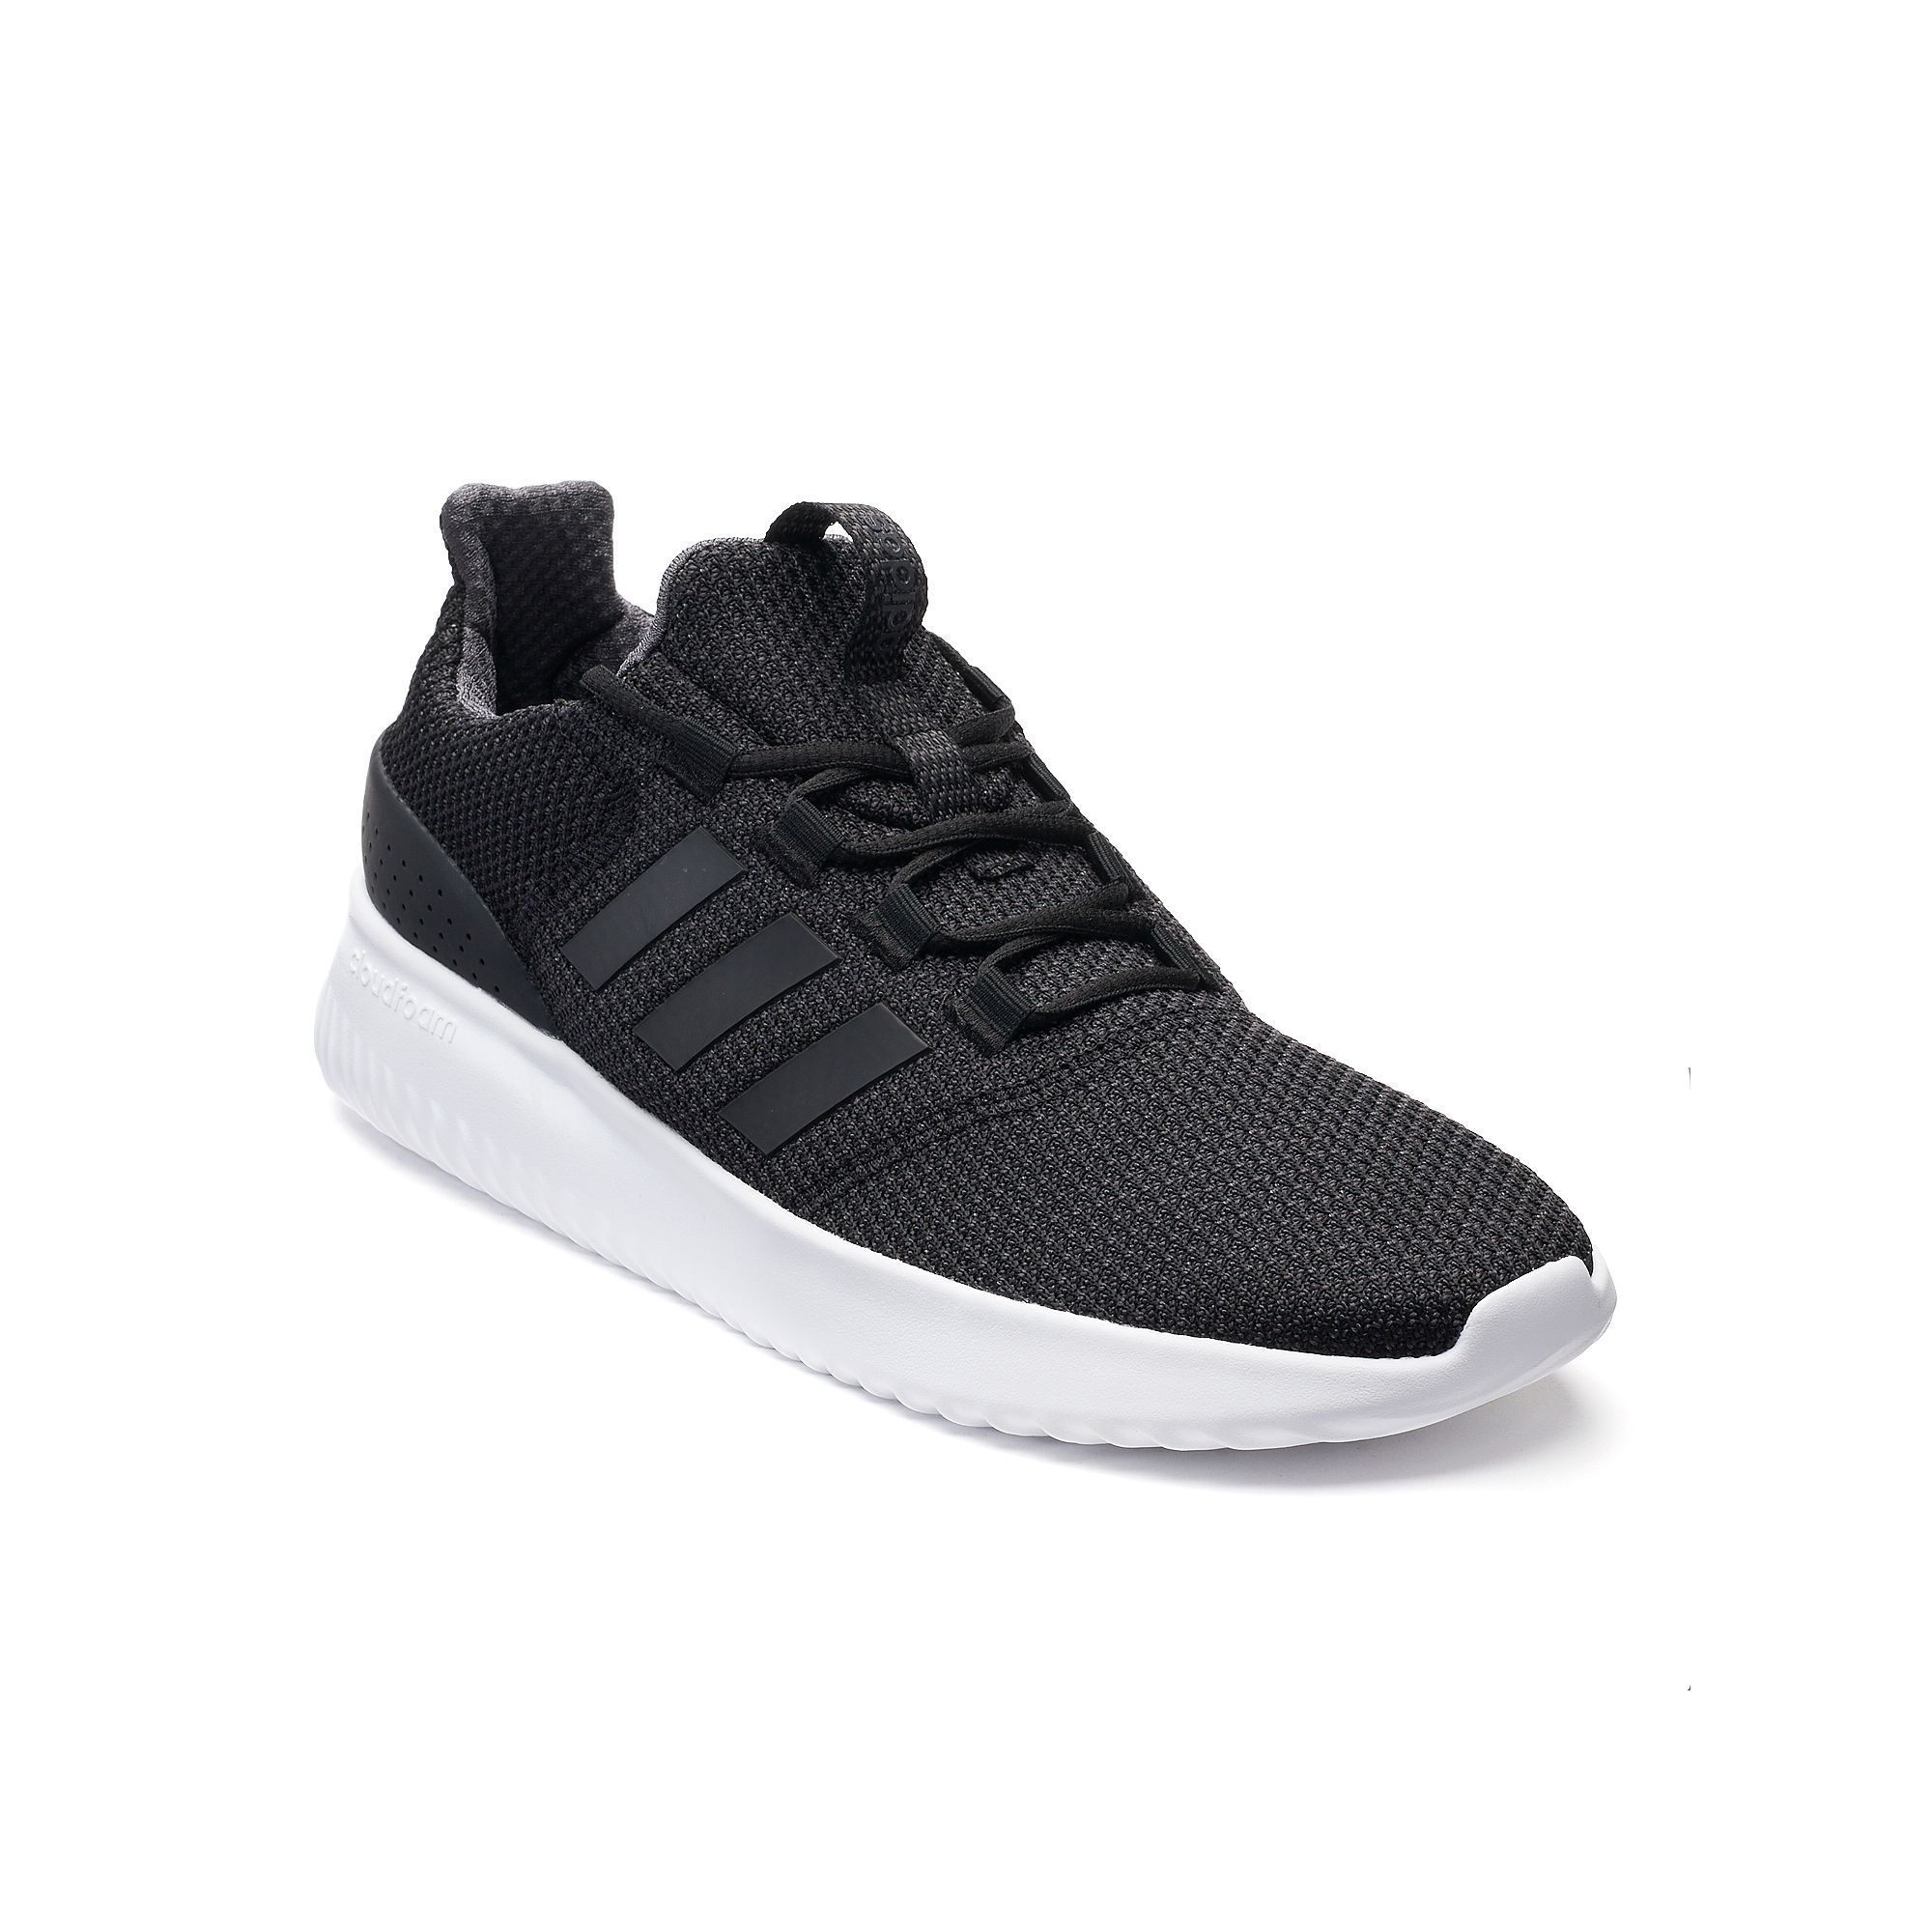 Pure White And Translucence adidas Baseline Mens Sneakers Black